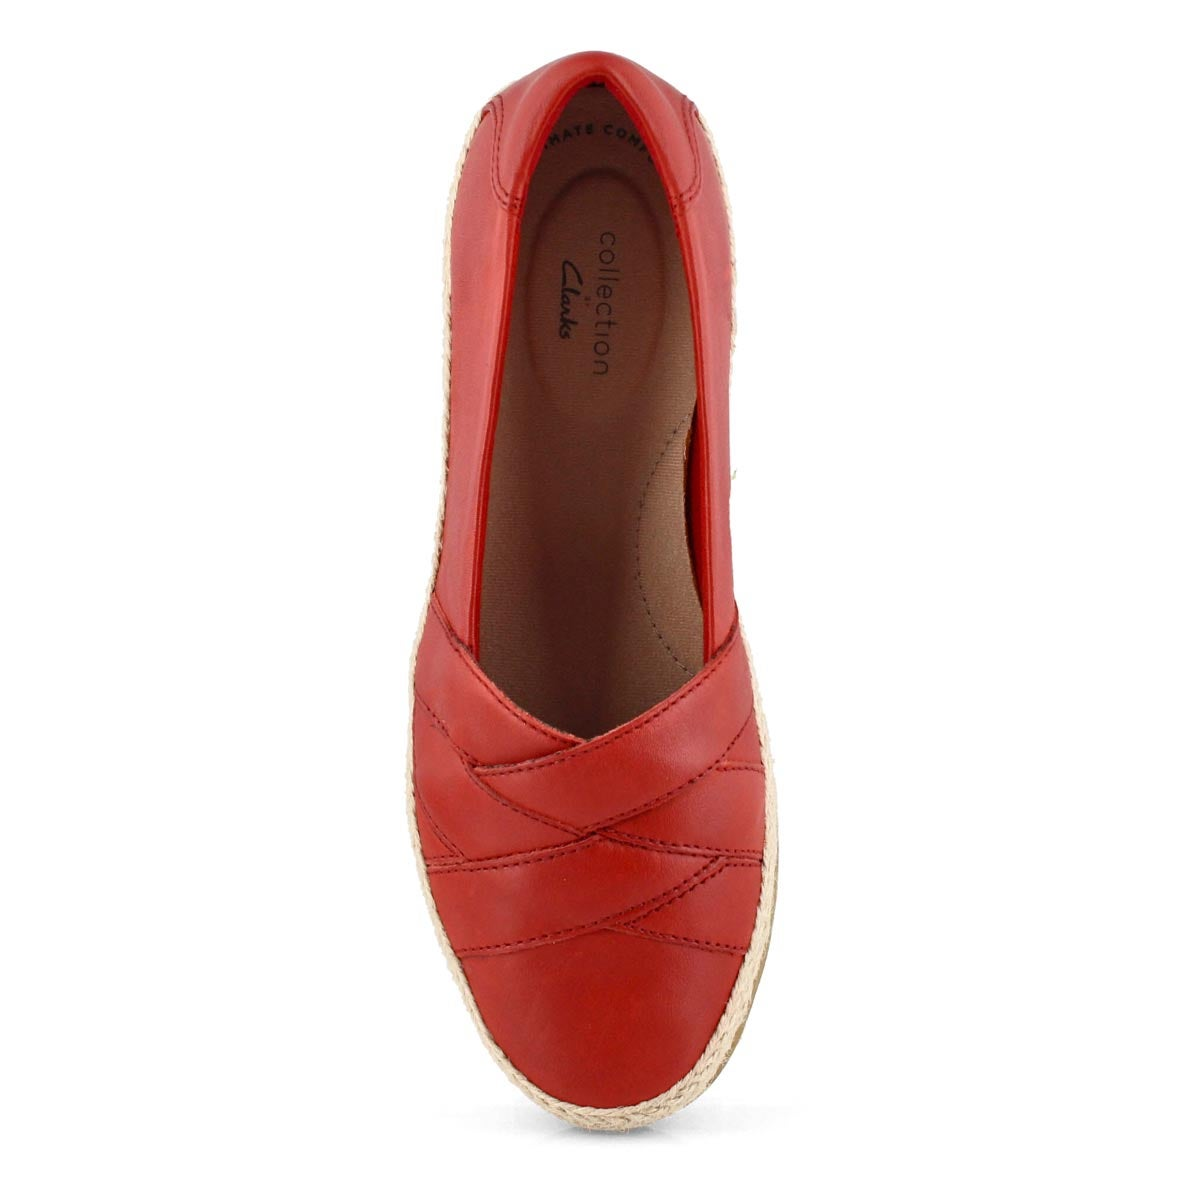 Lds Danelly Shine red slip on -wide